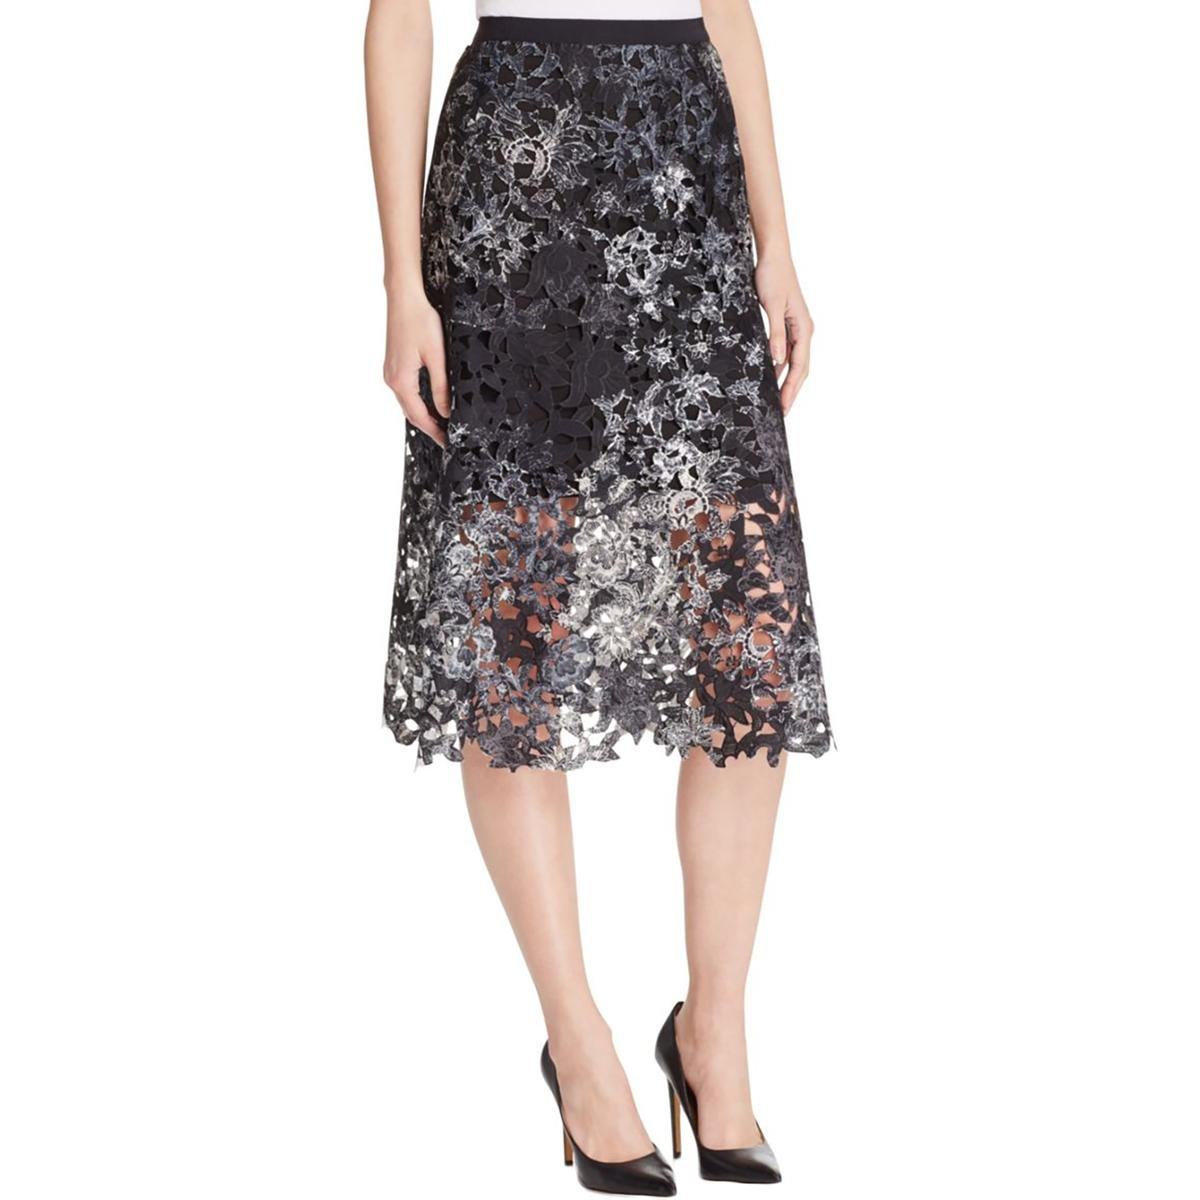 Elie Tahari Womens Tayla Printed Lace Overlay A-Line Skirt Black 16